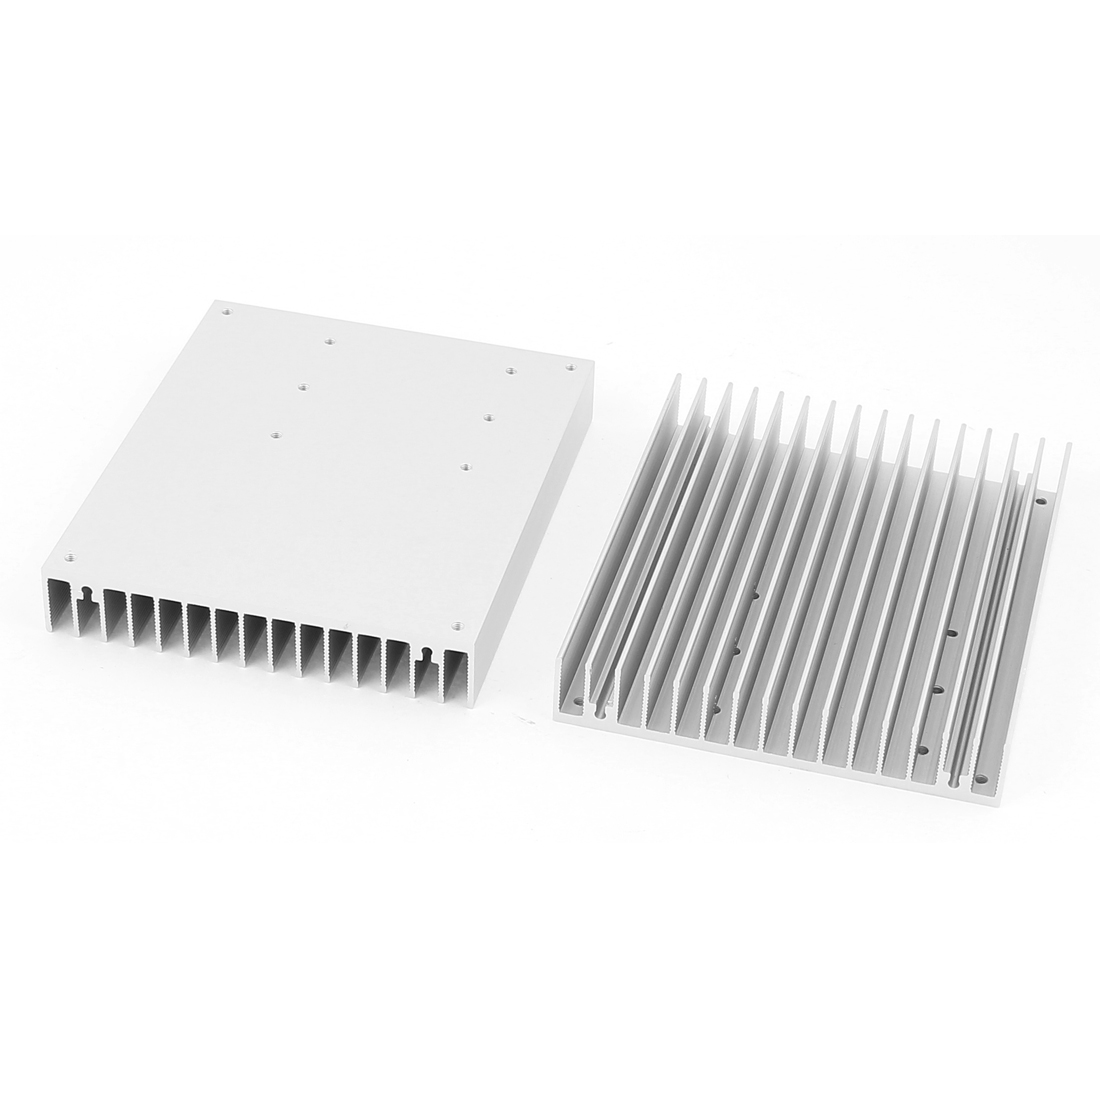 2 Pcs 120x100x18mm Aluminum Rectangle Heat Diffuse Cooling Fin Heatsink Silver Tone